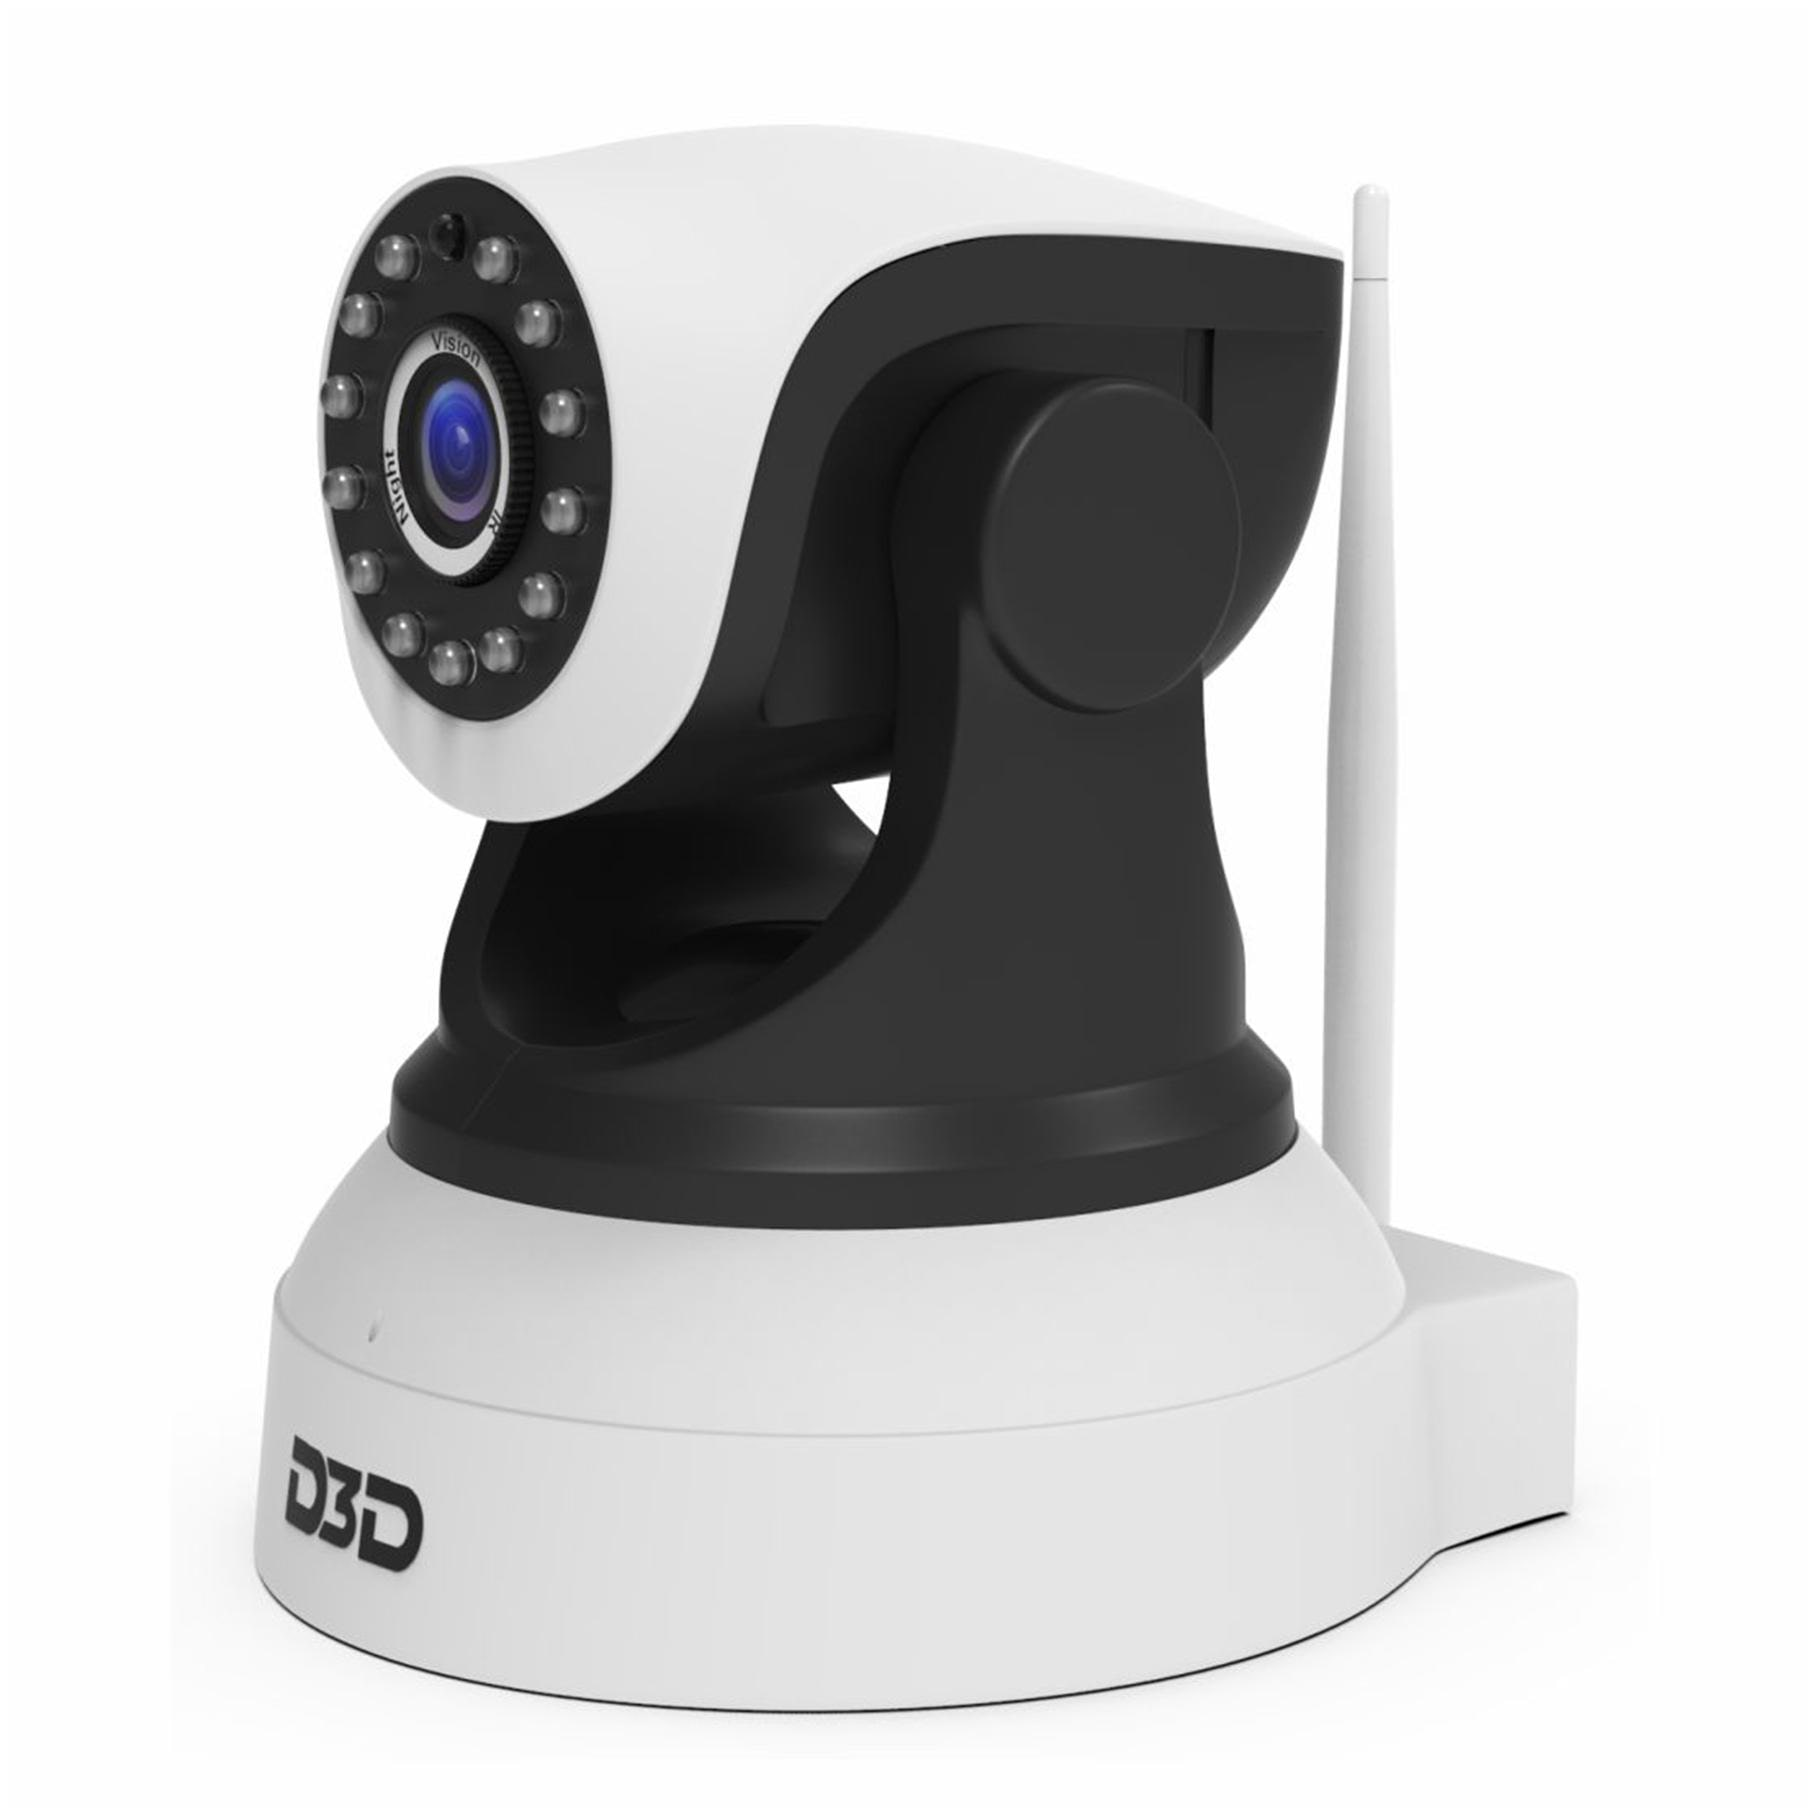 D3D D8809 Wireless HD IP Wifi CCTV Indoor Security Camera   Black   White  Support Upto 128  GB Micro SD Card  by D3D Security